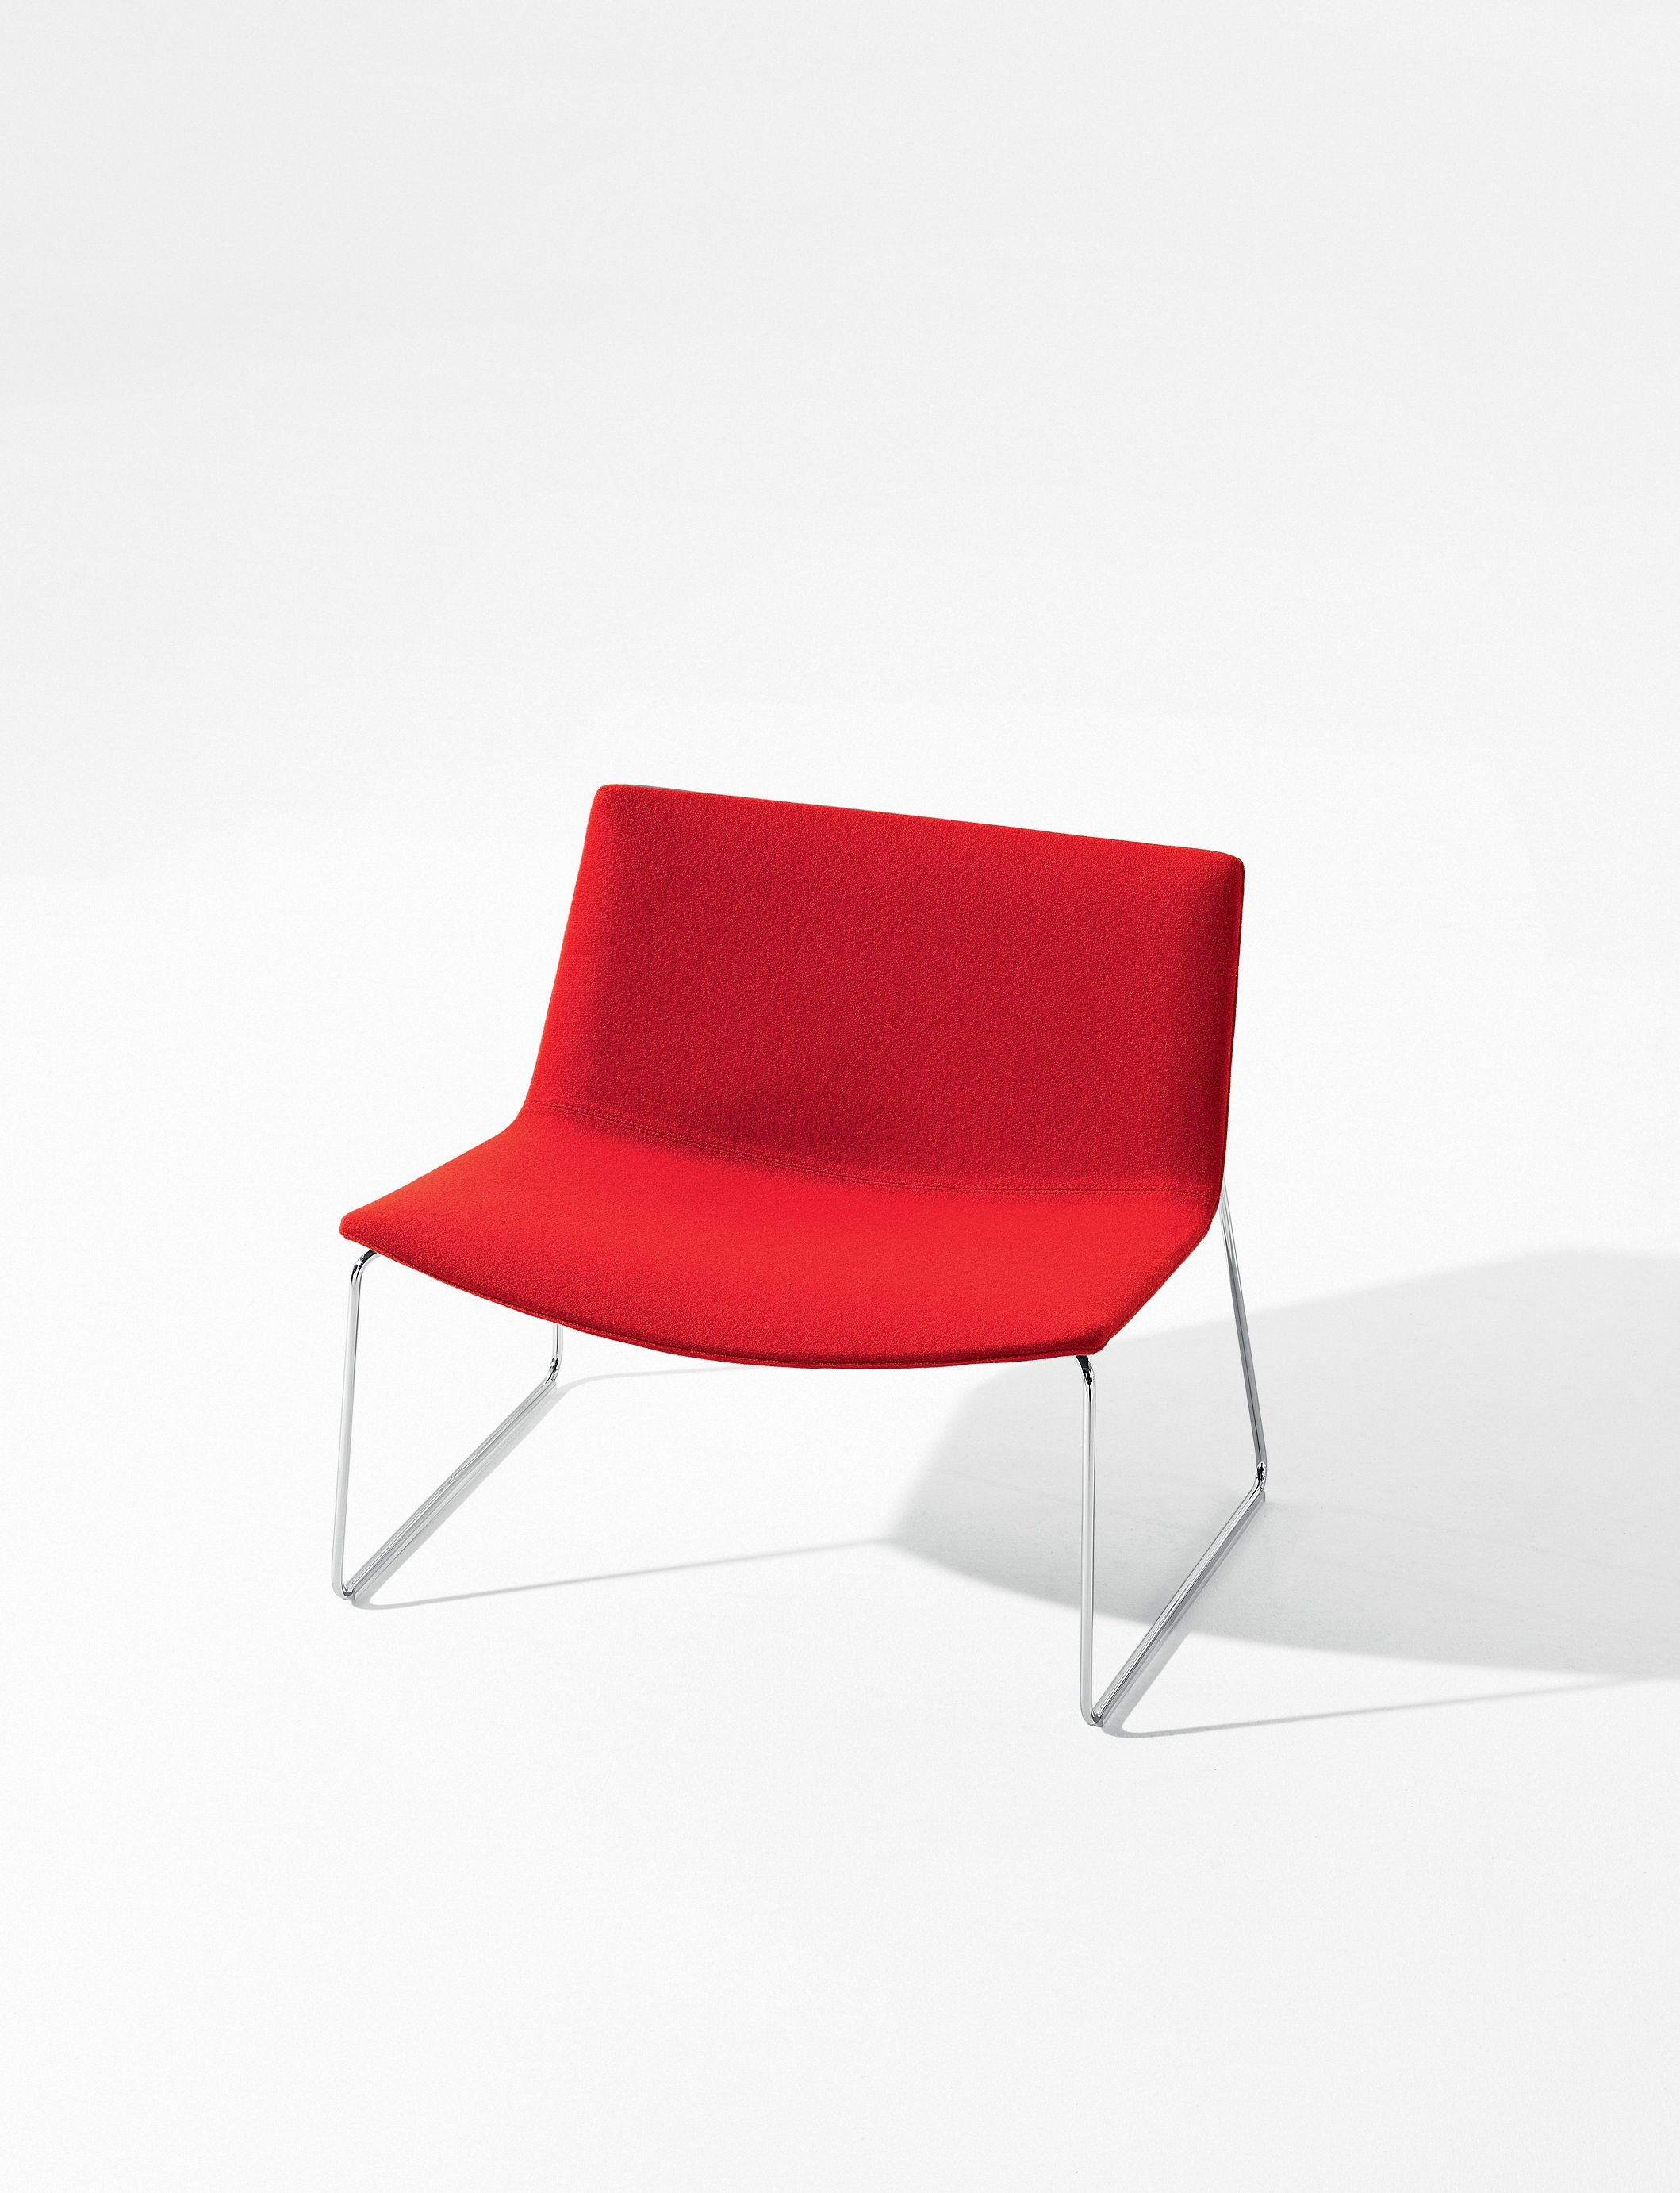 Paint it red Catifa 80 design by Lievore Altherr Molina arper